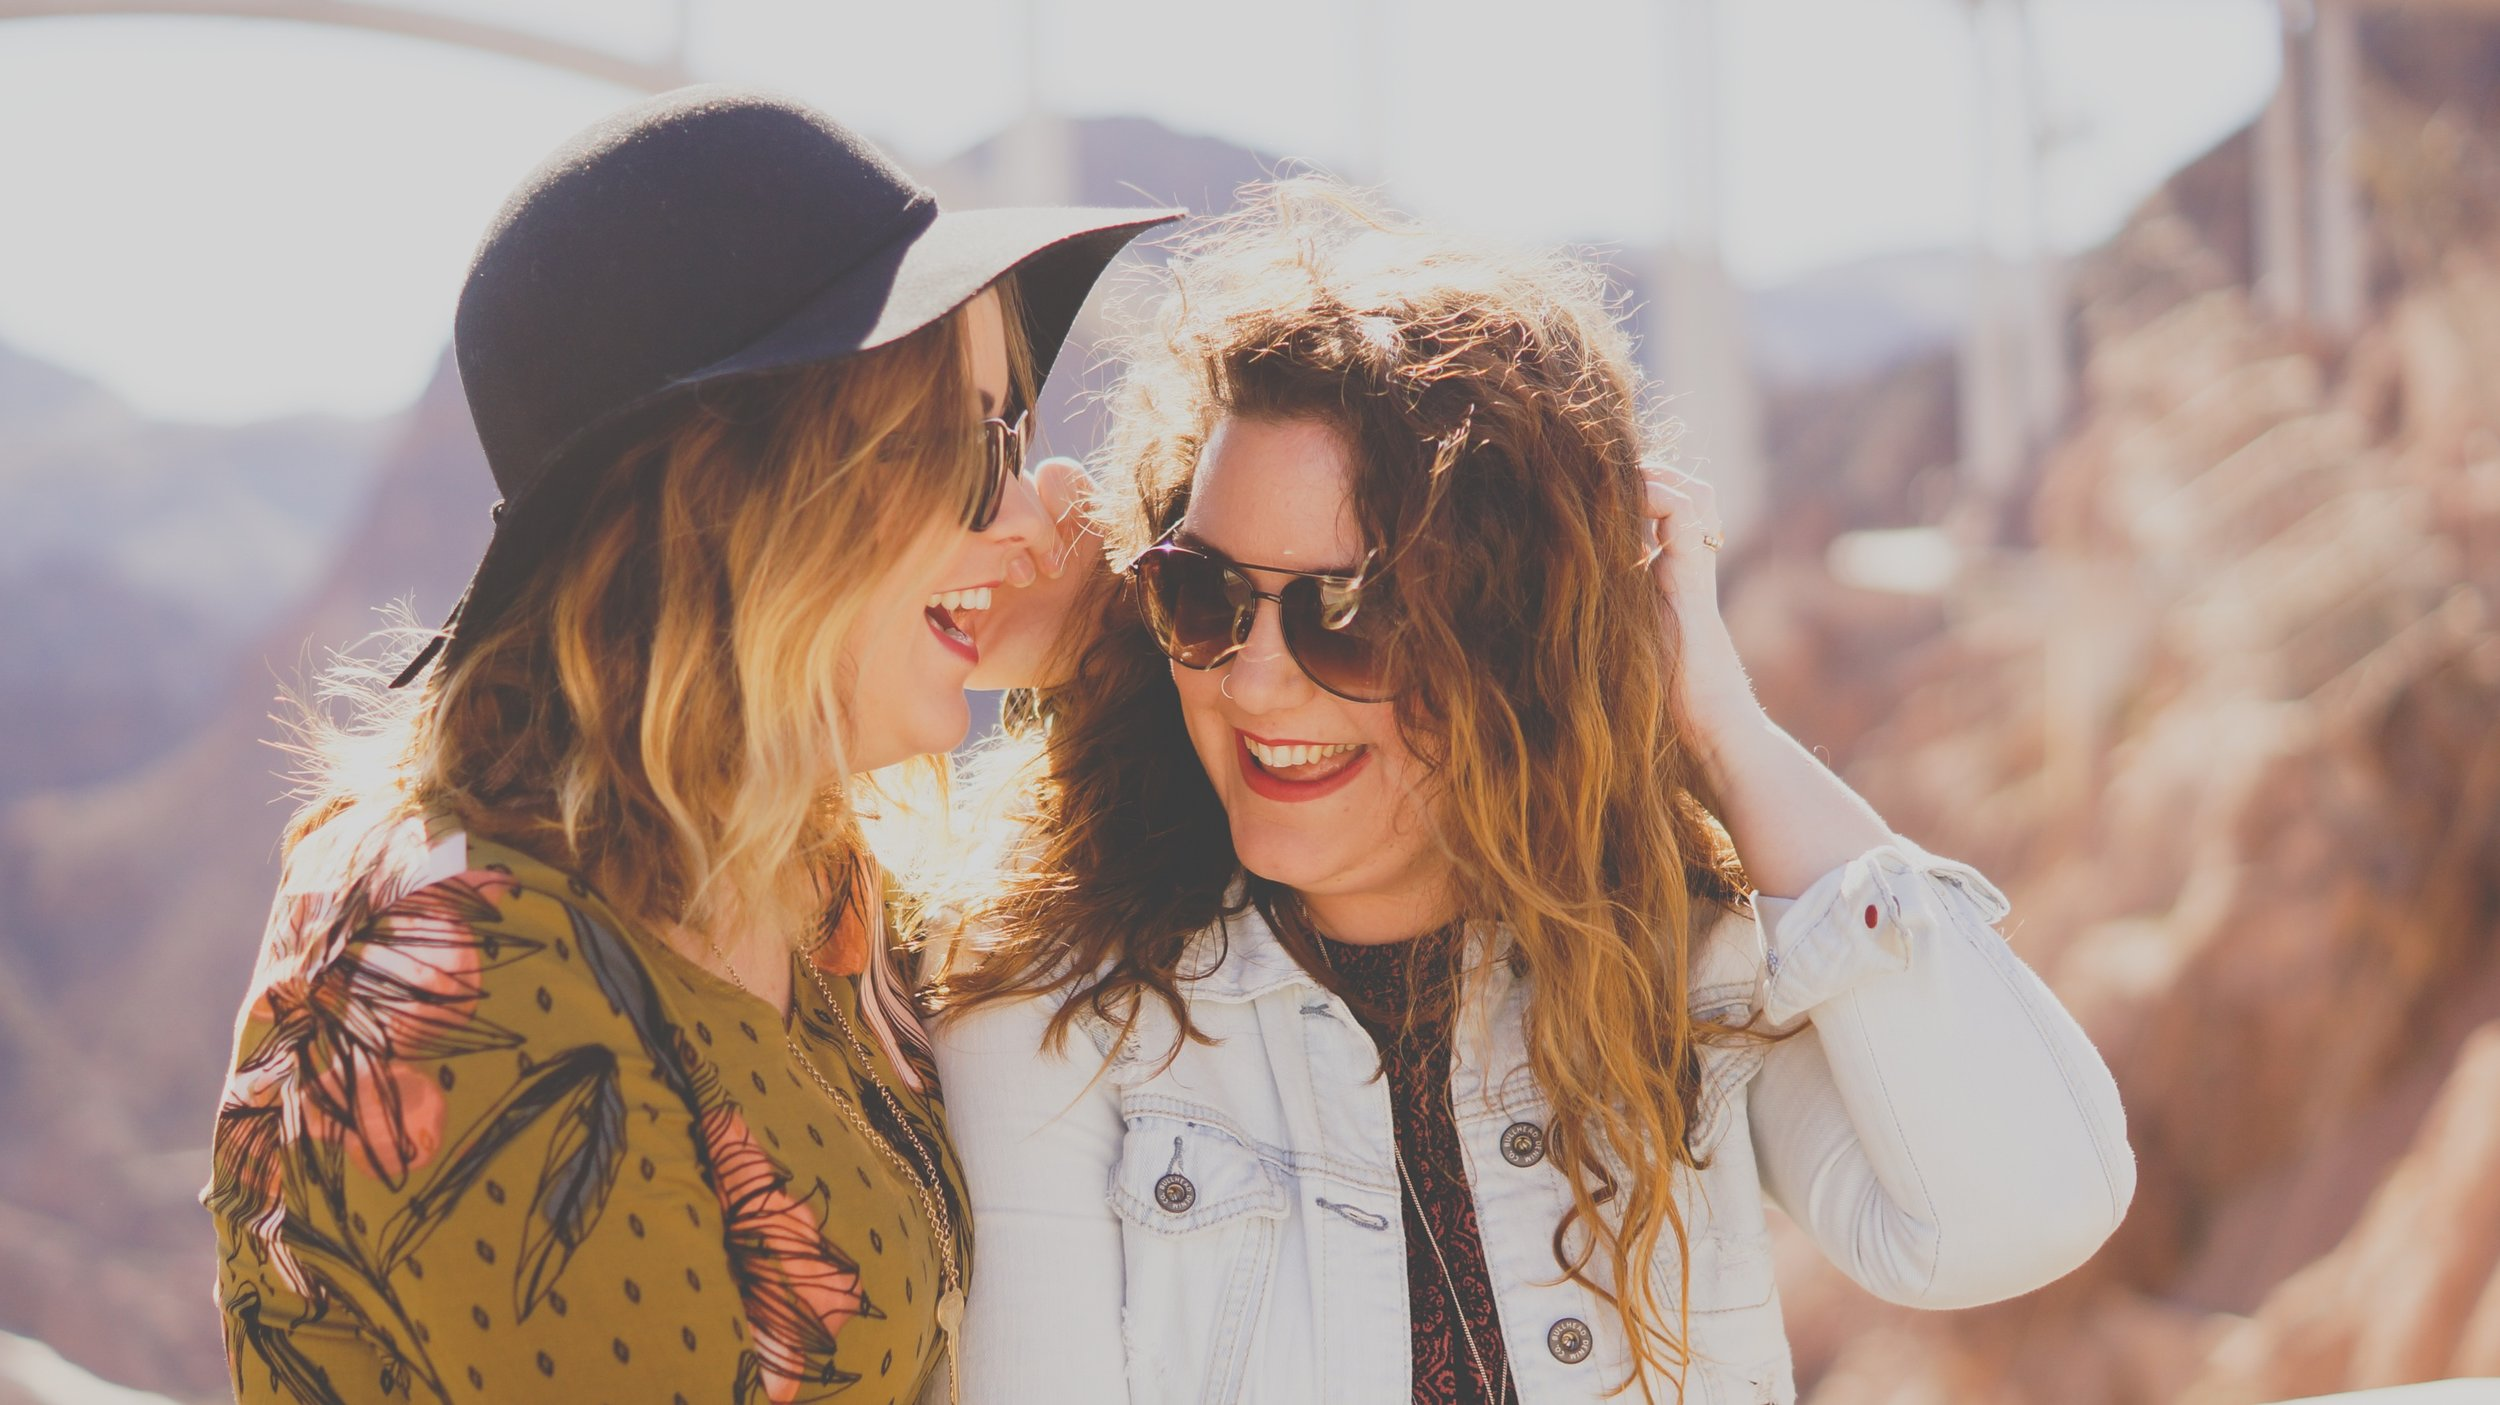 connecting with others eases anxiety